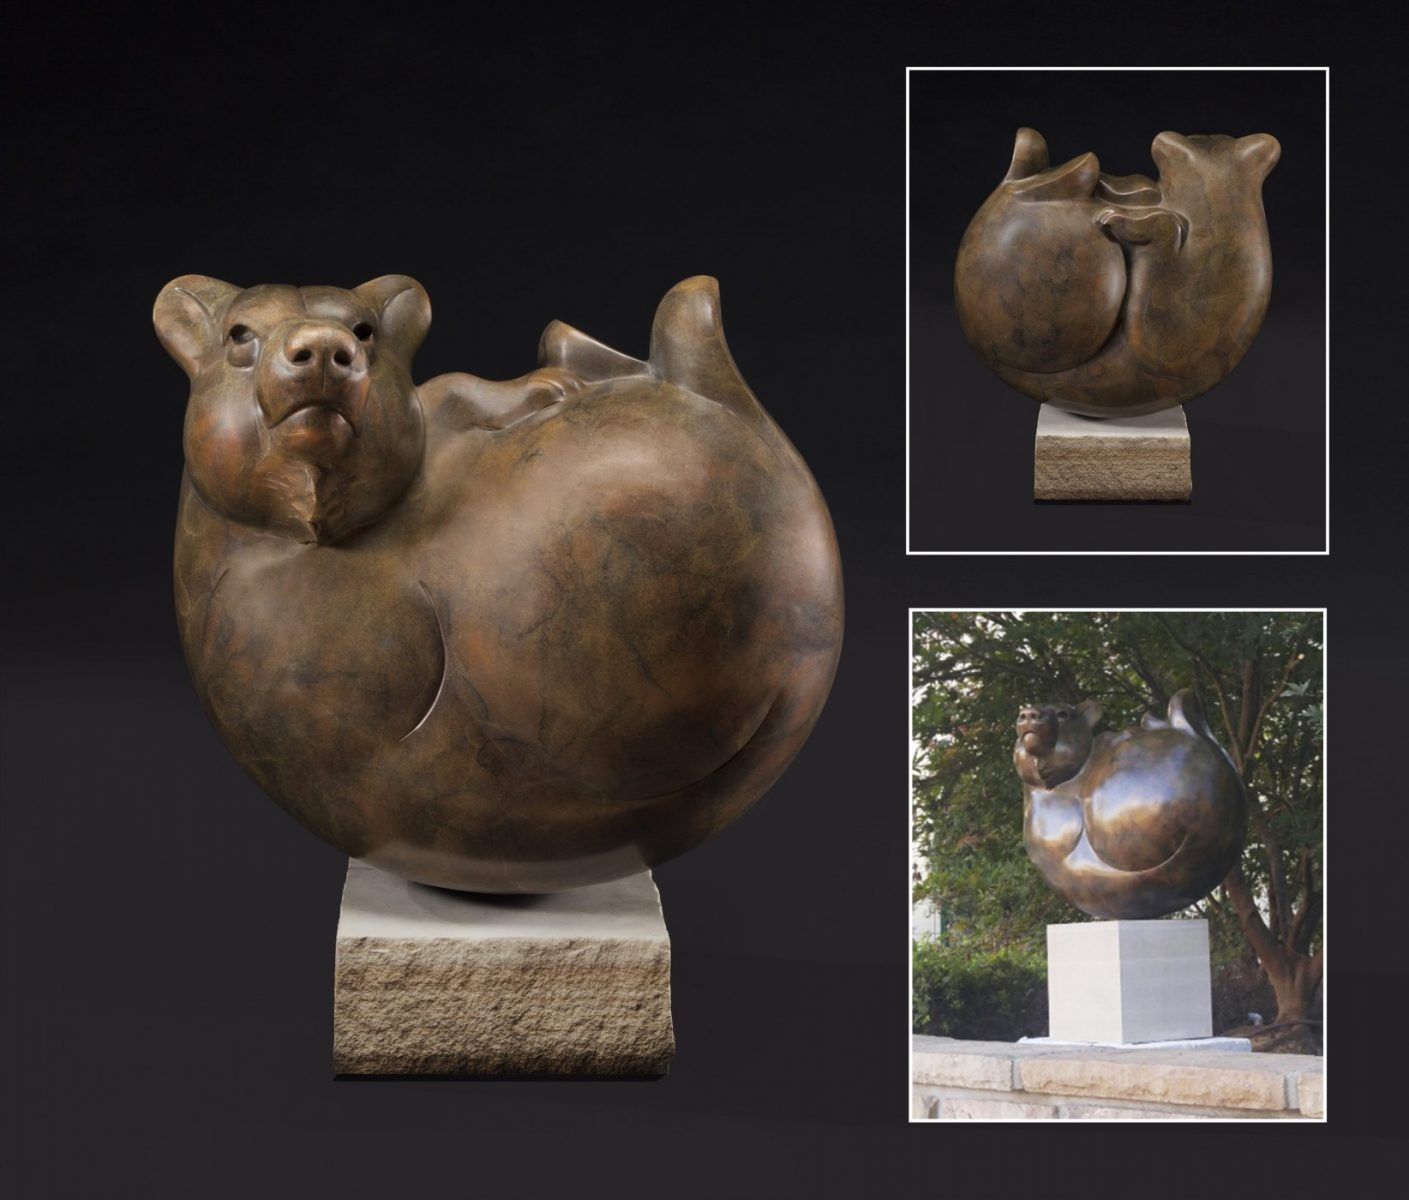 Bear Ball bronze bear sculpture by Tim Cherry